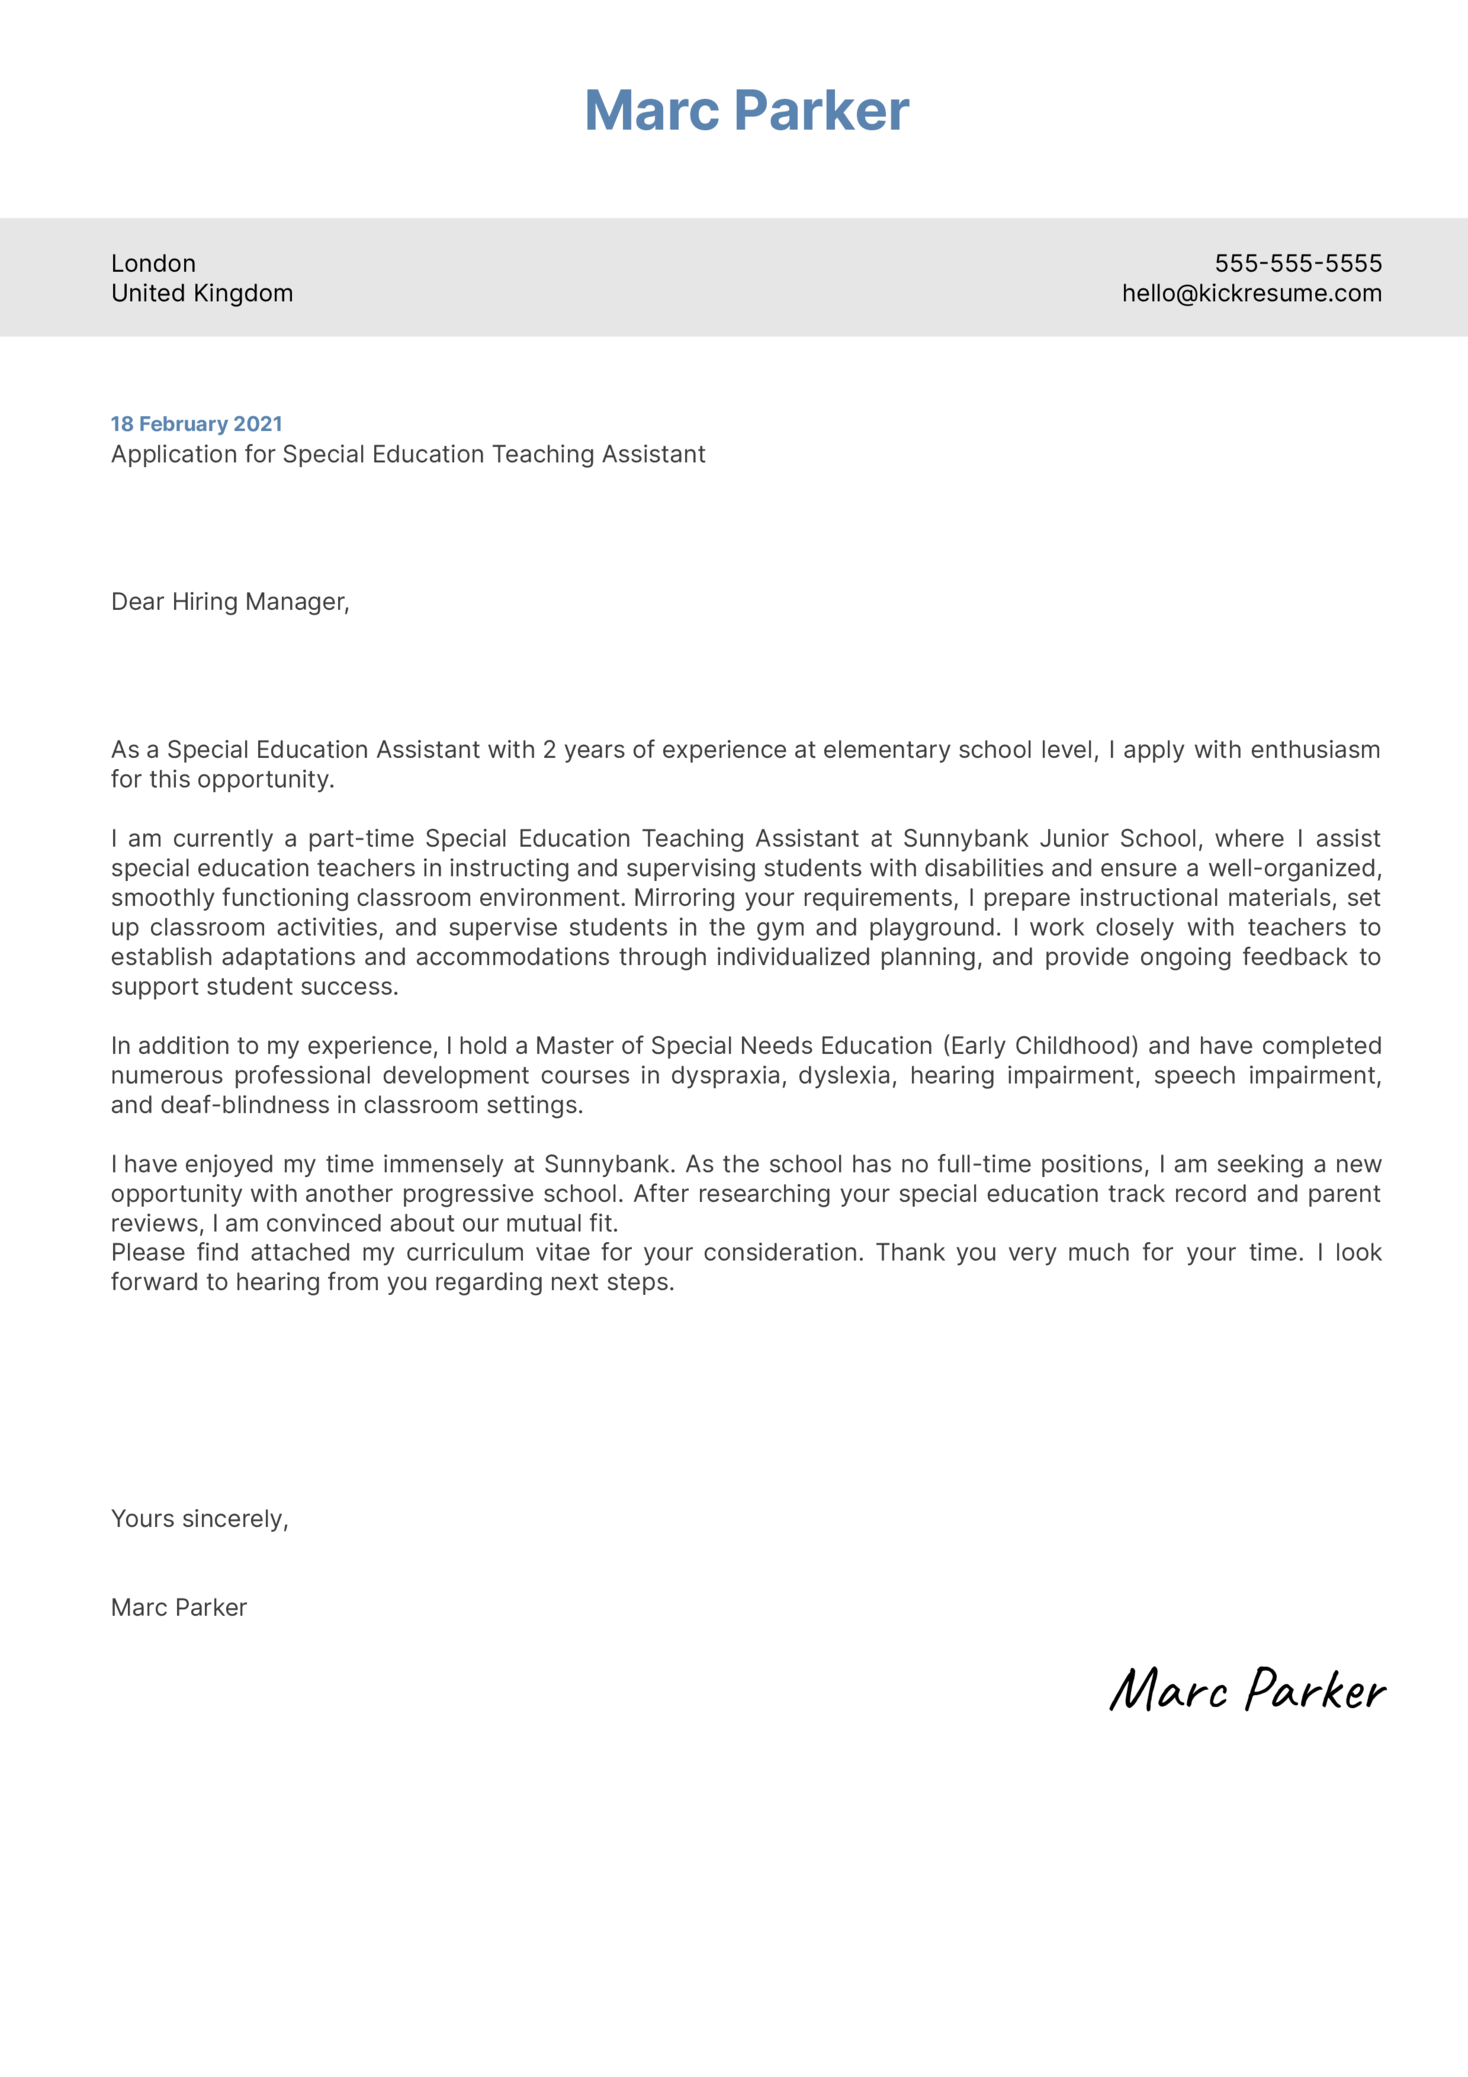 Special Education Teaching Assistant Cover Letter Template